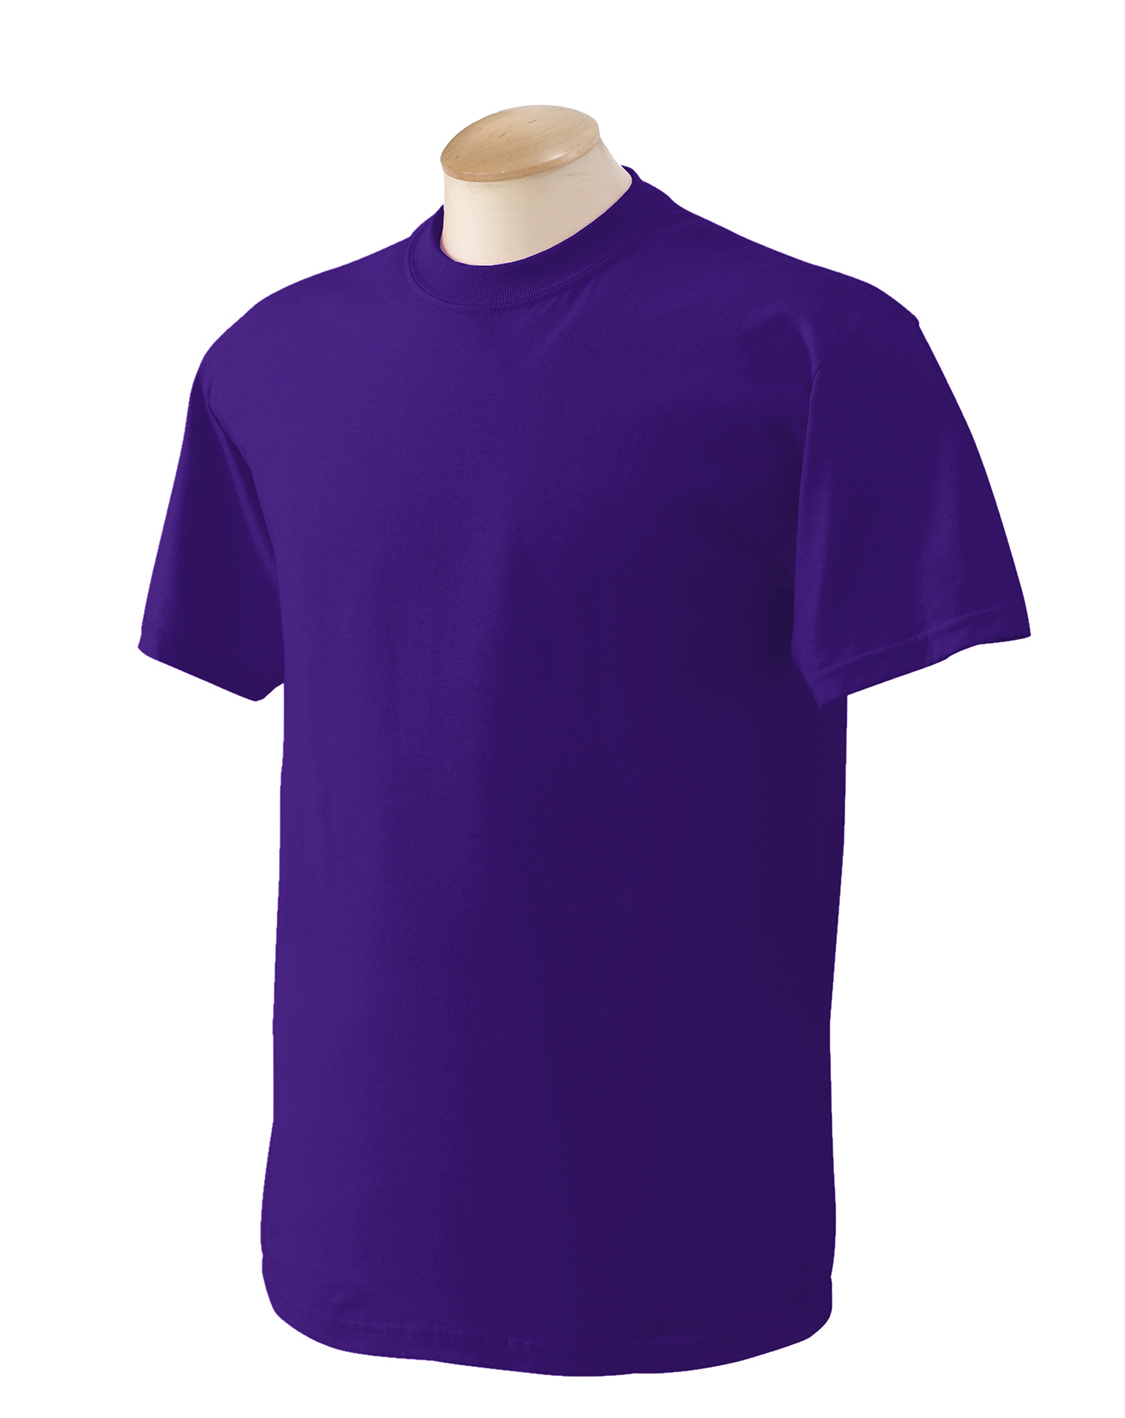 click to view PURPLE